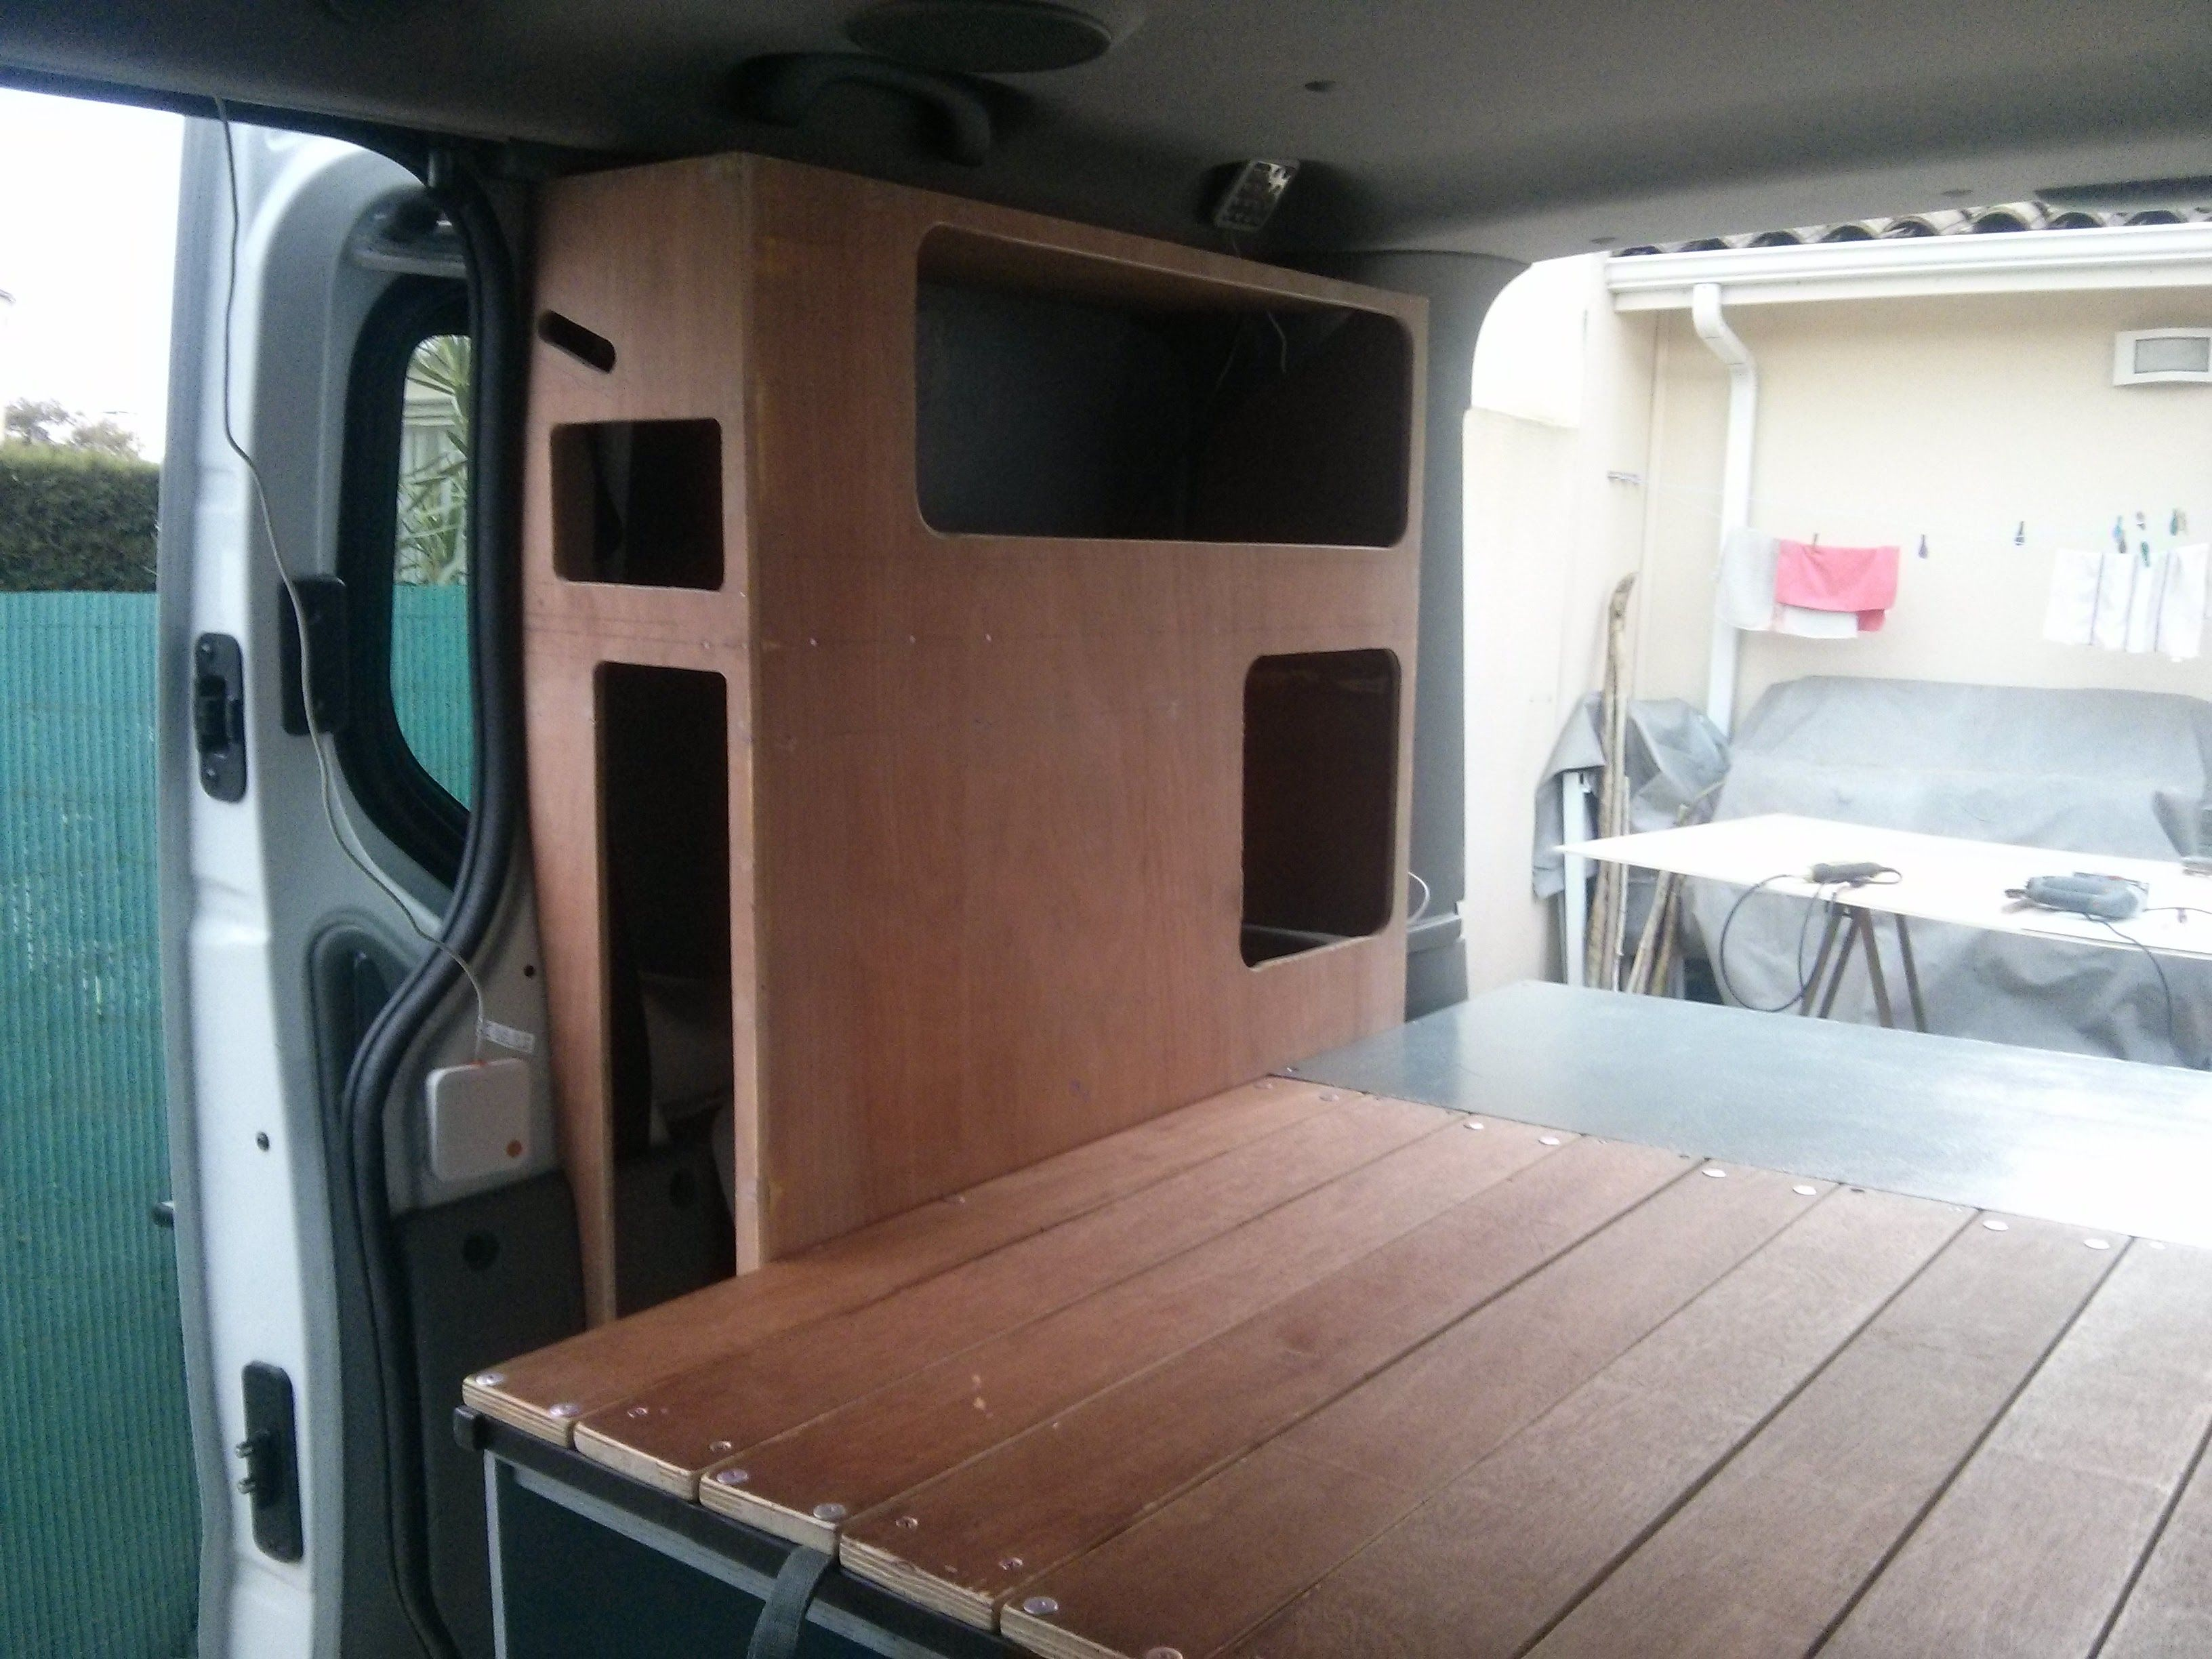 etagere de rangement am nagement renault trafic hinano mobile trafic am nag trafic. Black Bedroom Furniture Sets. Home Design Ideas